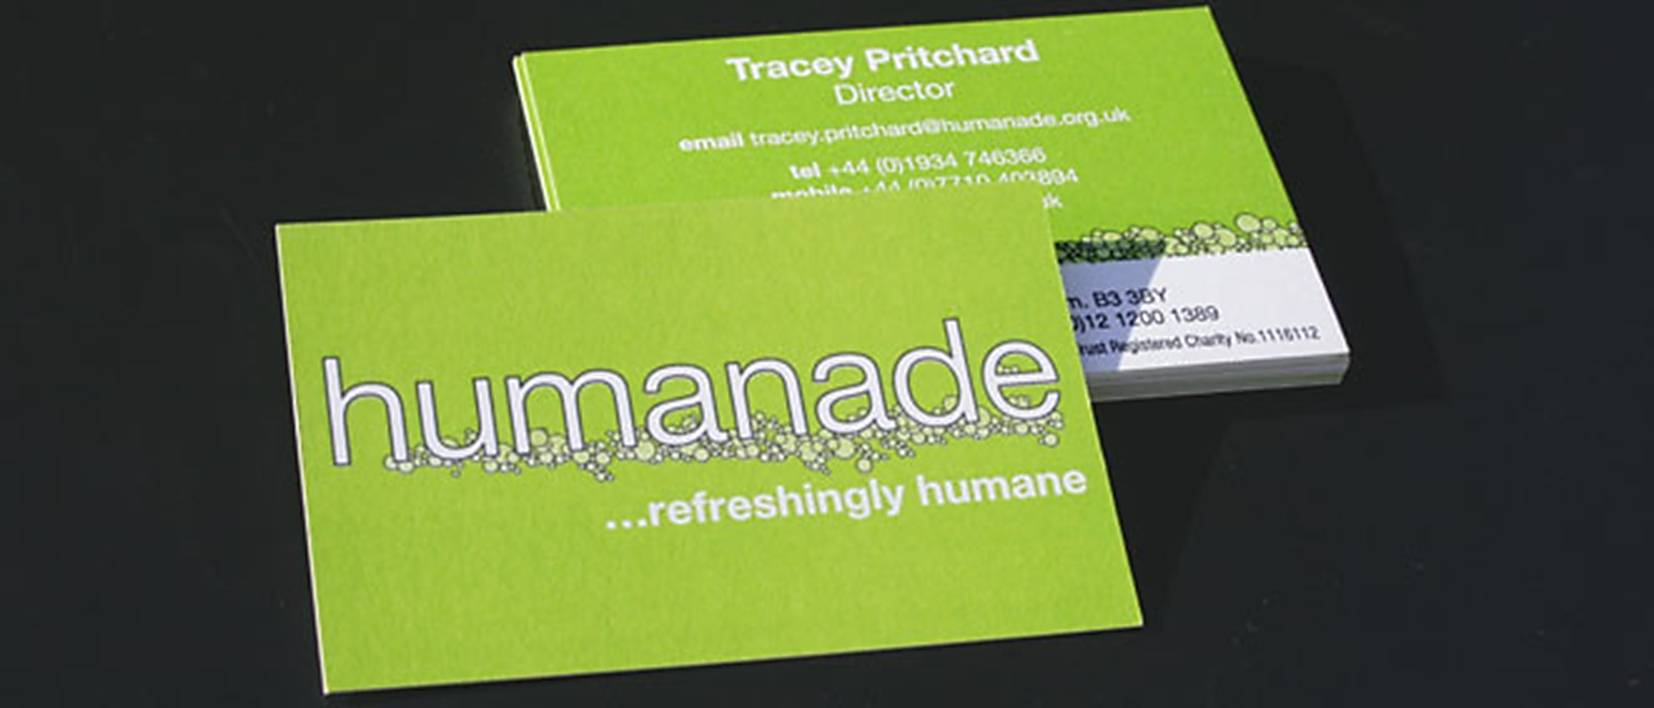 humanade business cards on black background